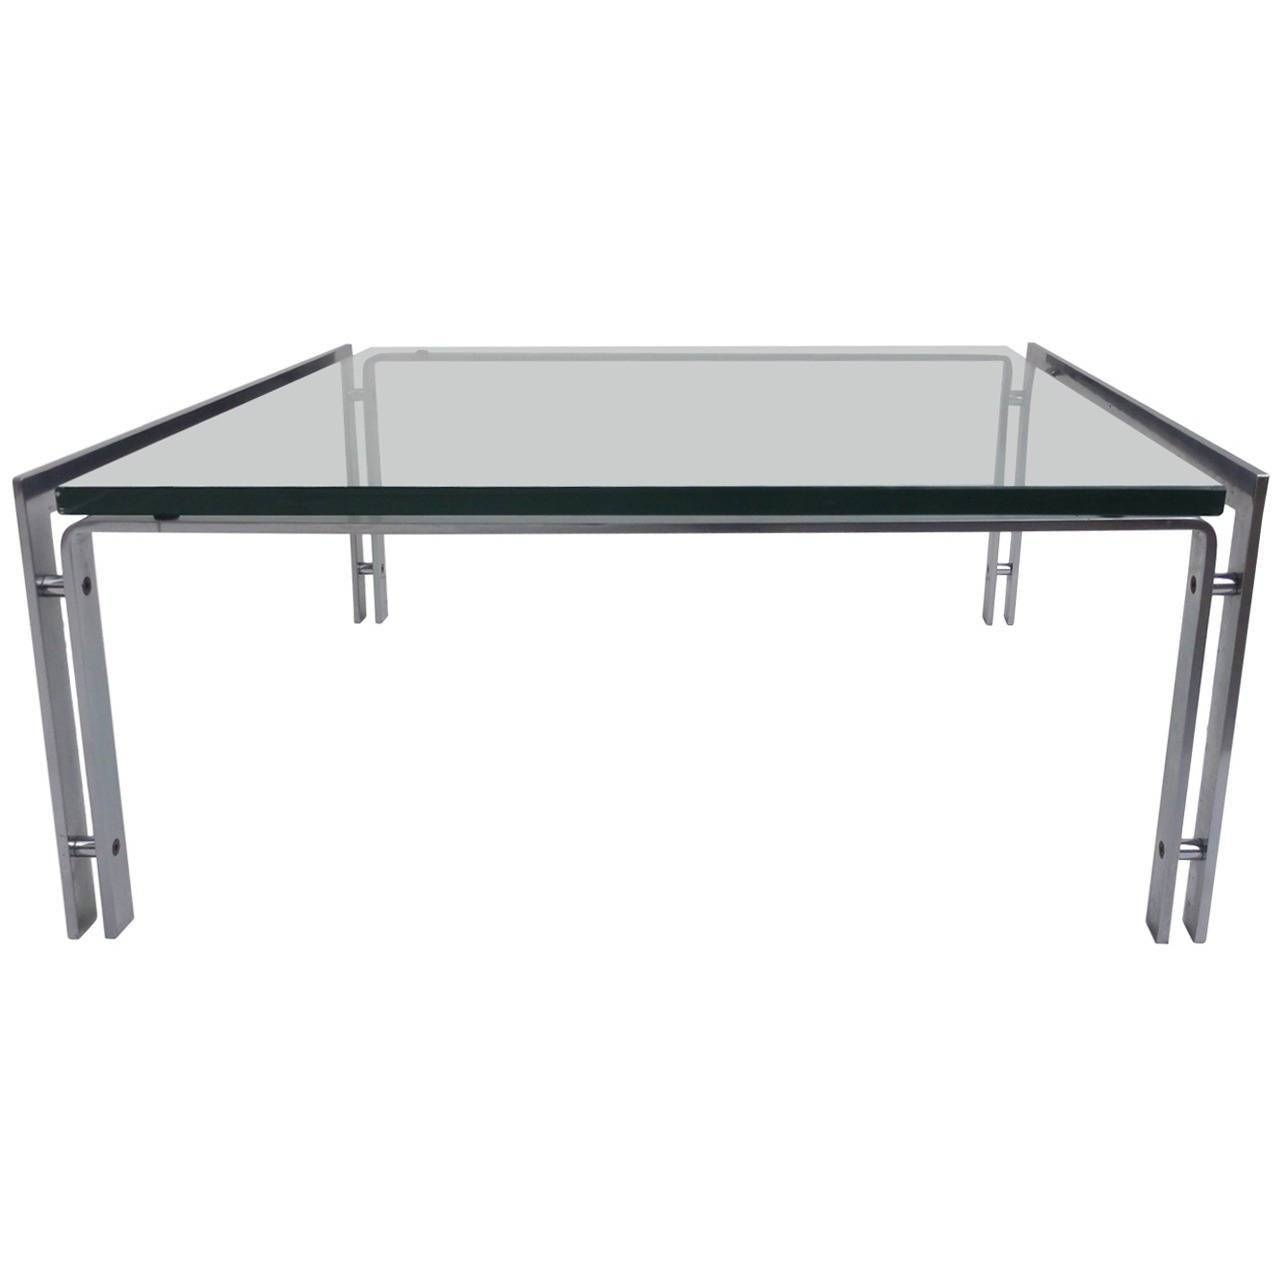 Dutch Metaform Steel And Glass Coffee Table In The Style Of Poul within Glass Steel Coffee Tables (Image 11 of 30)